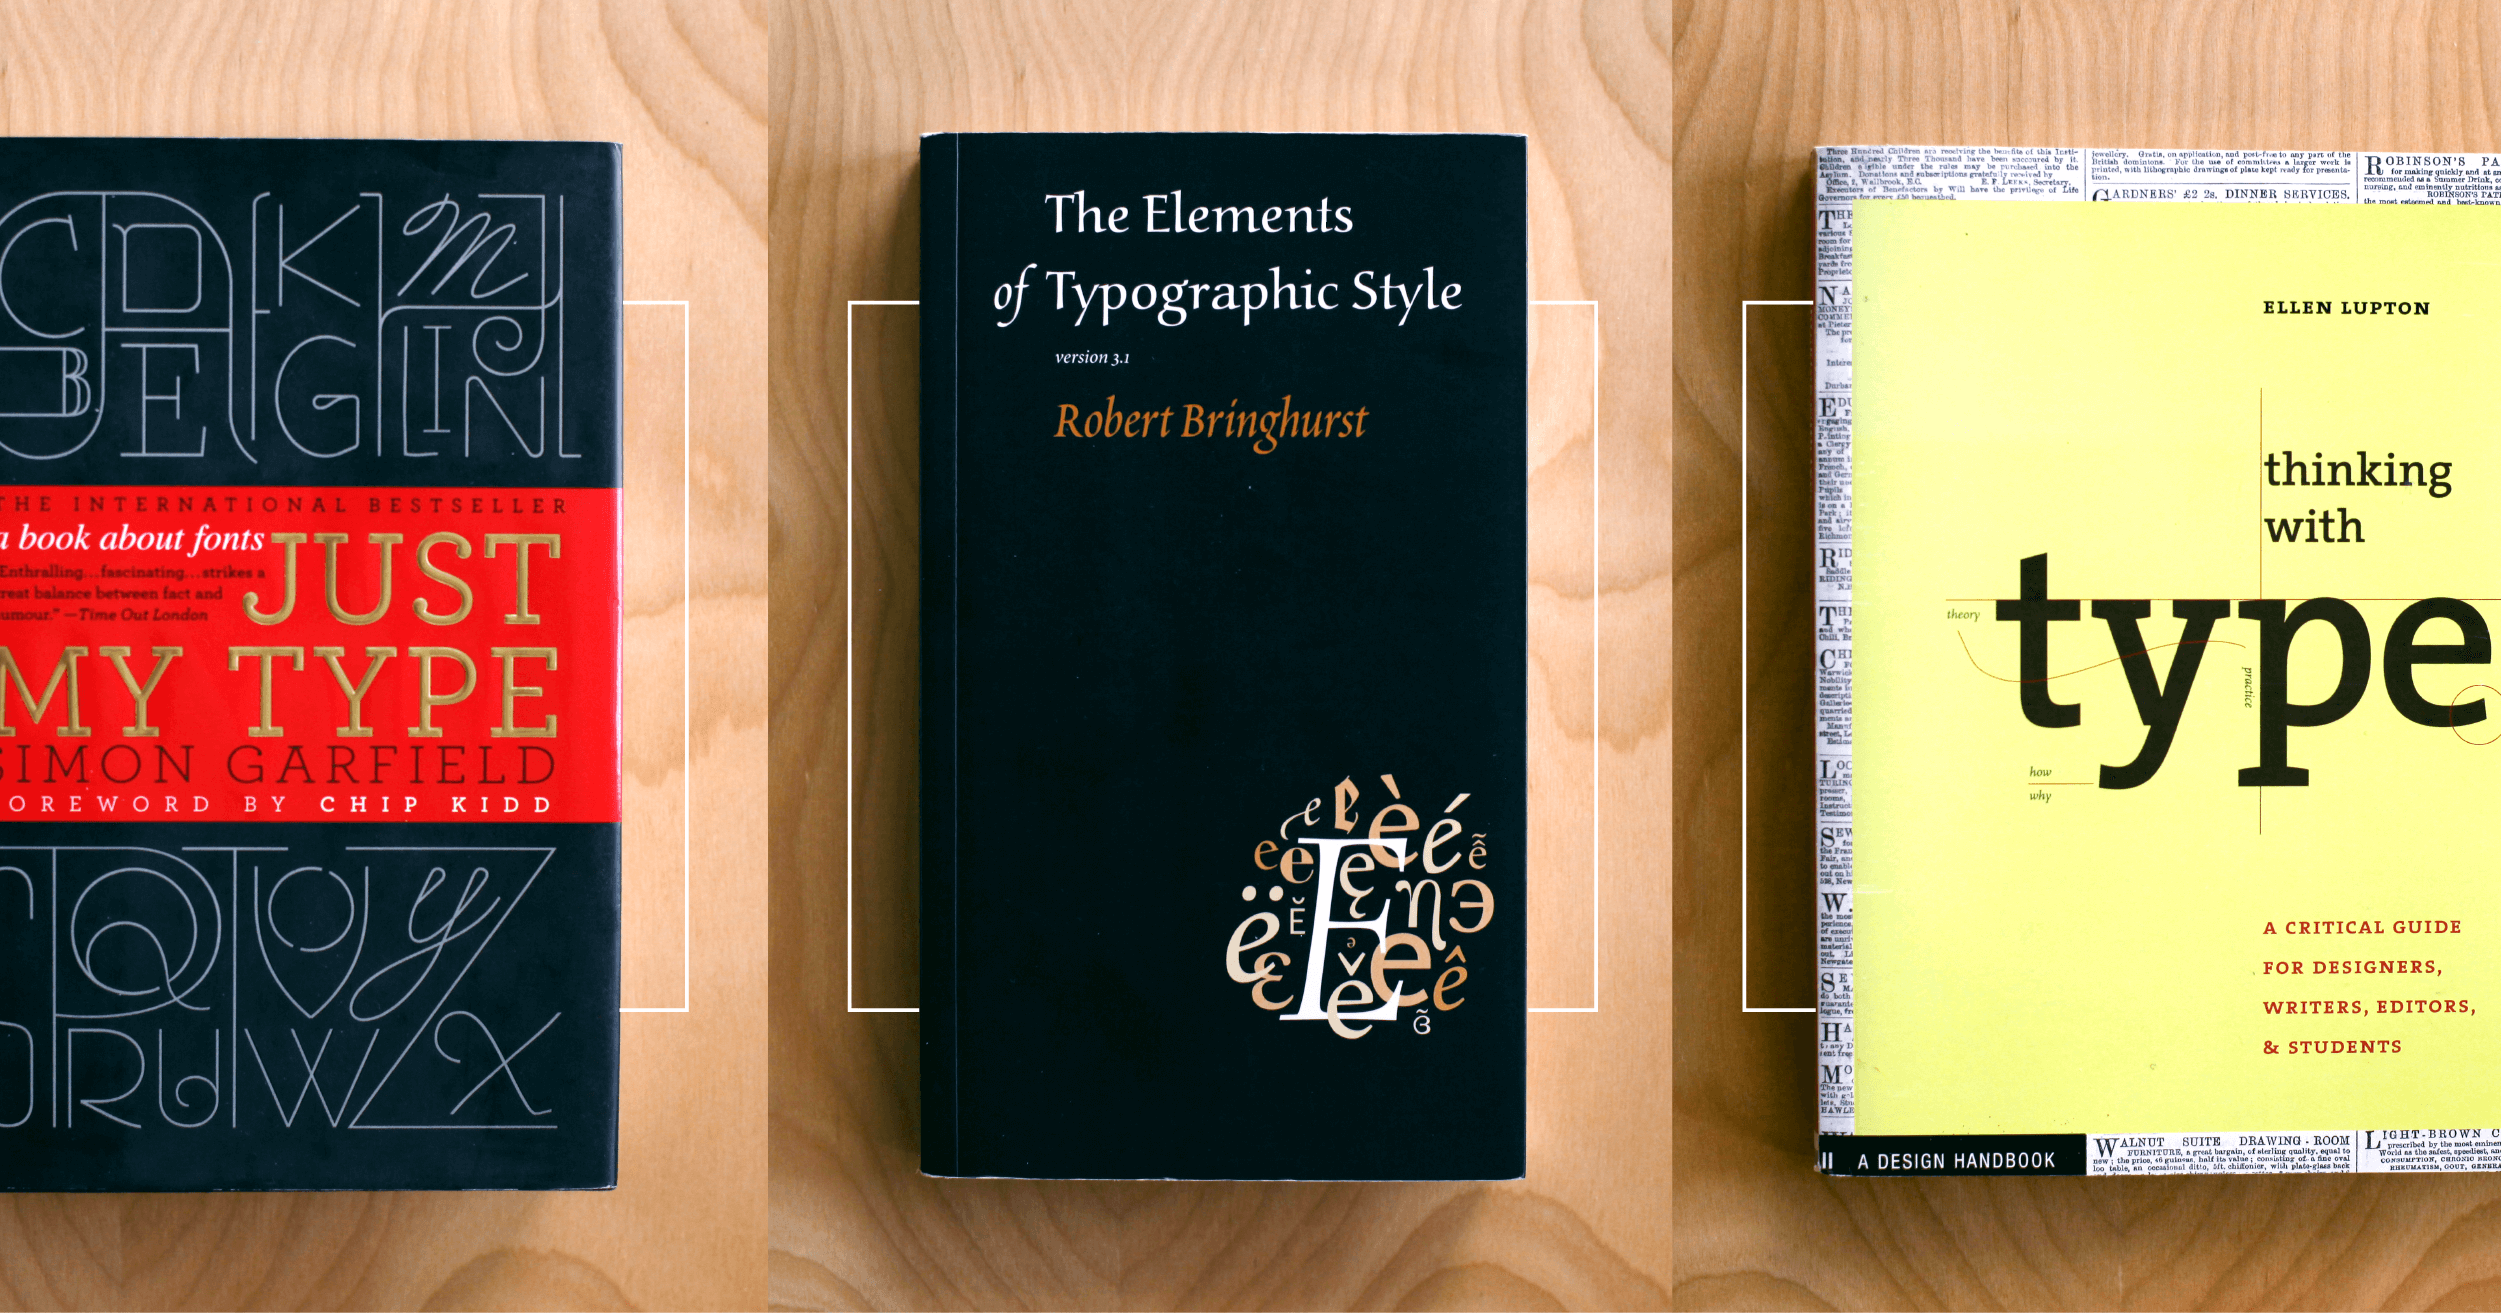 4 books for better typography: The Elements of Typographic Style, Anatomy of a Typeface, Just My Type, and Thinking With Type